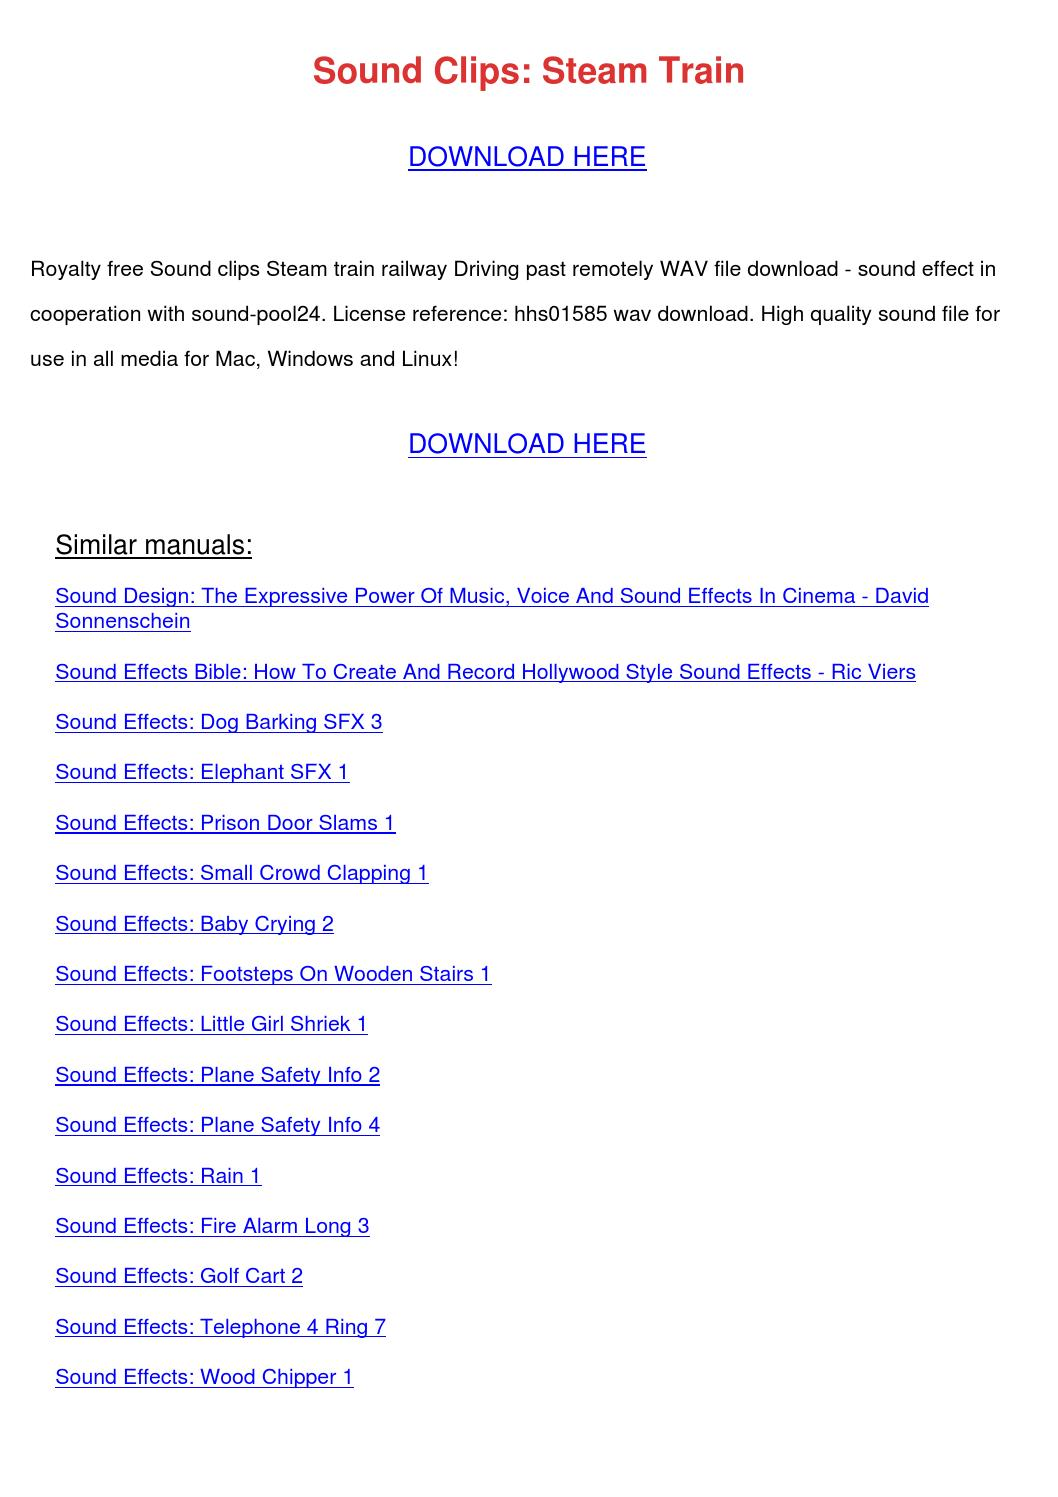 Sound Clips Steam Train by SeanRoach - issuu